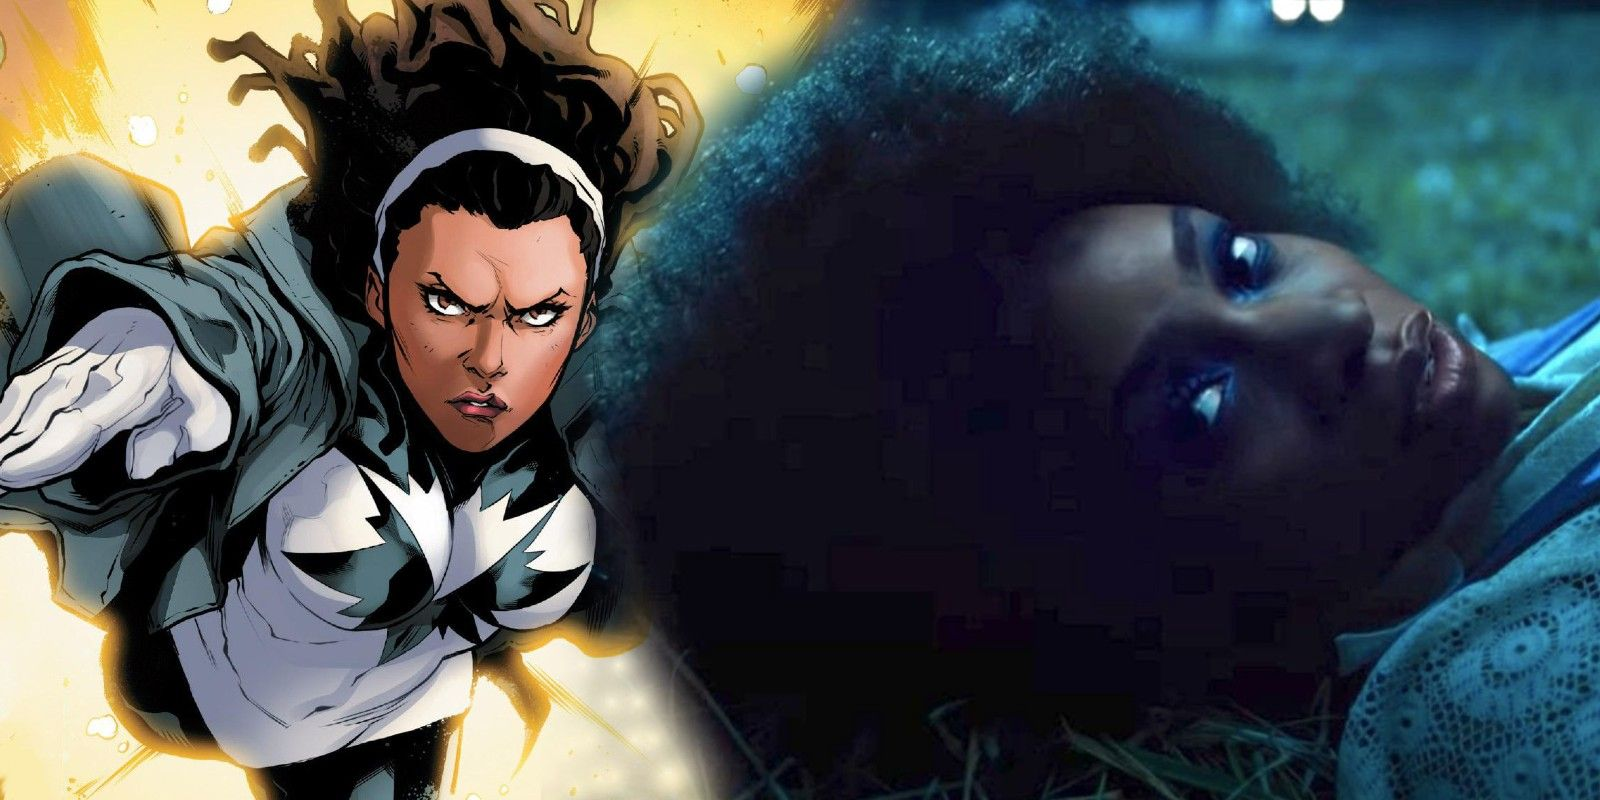 First Look At Monica Rambeau S Spectrum Suit From Marvel S Wandavision By caitlyn becker for dailymail.com. spectrum suit from marvel s wandavision